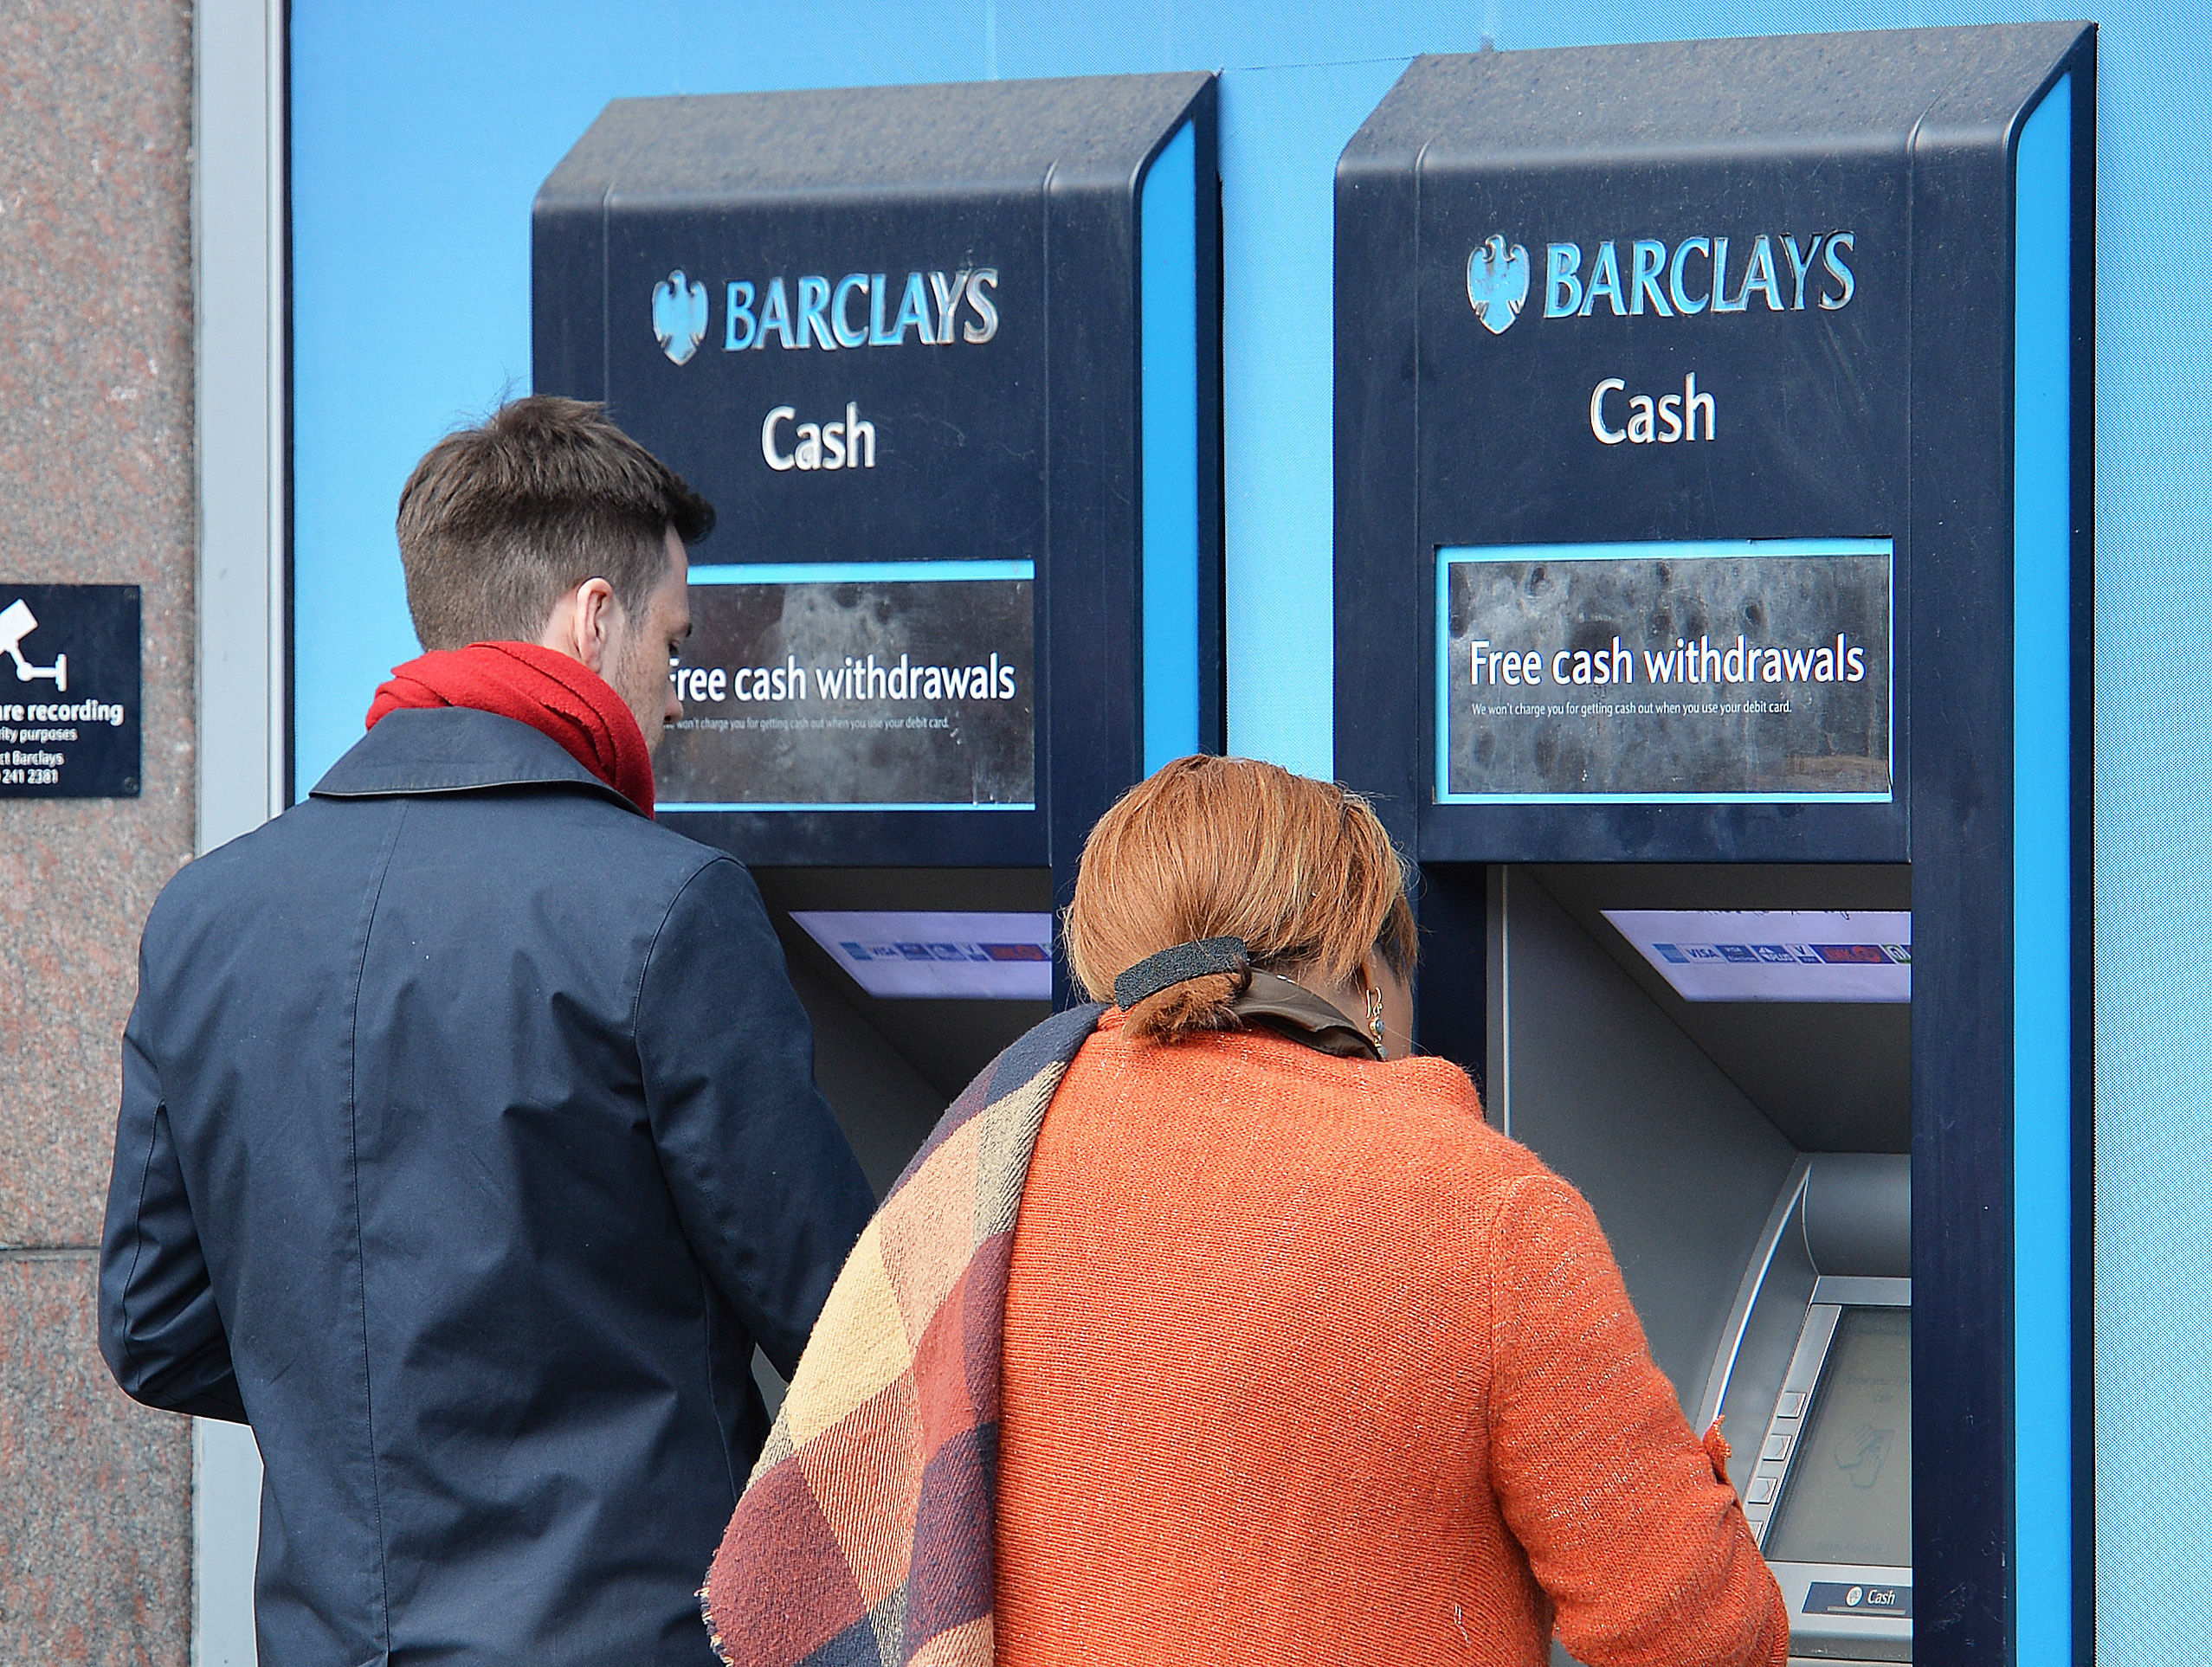 There are too many cash machines for current usage of physical currency, says LINK.